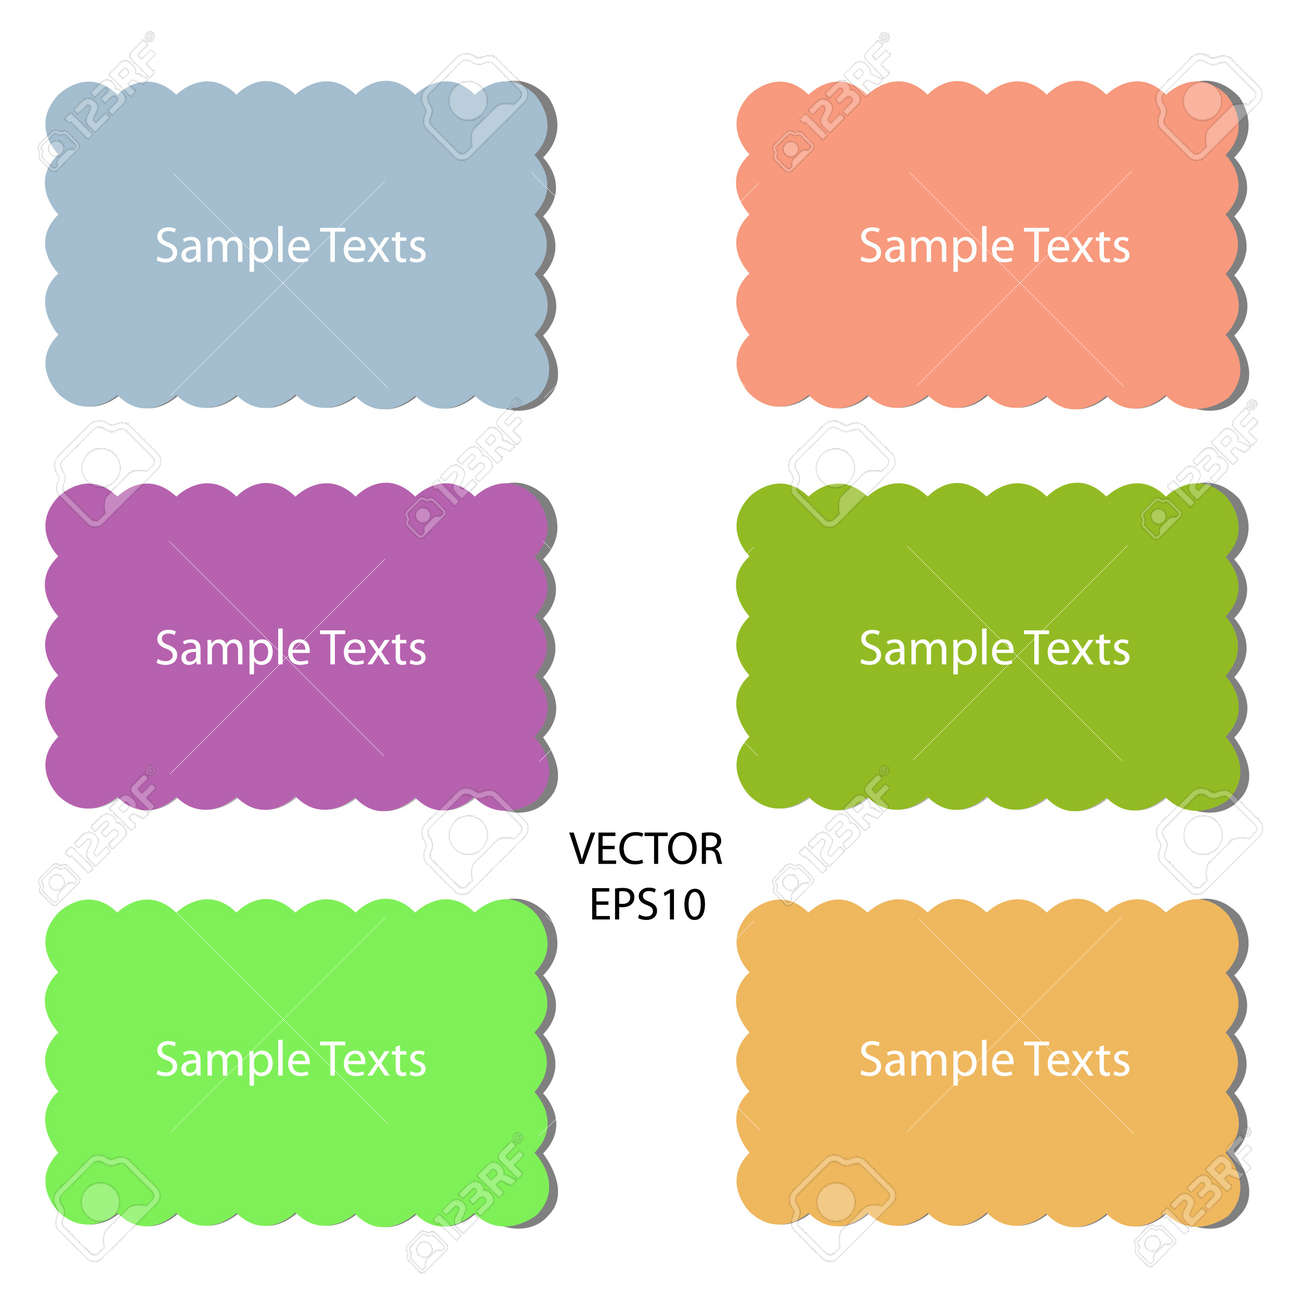 blank color papers on background,blank paper sheets,texts box,idea box,vector Stock Vector - 18139037